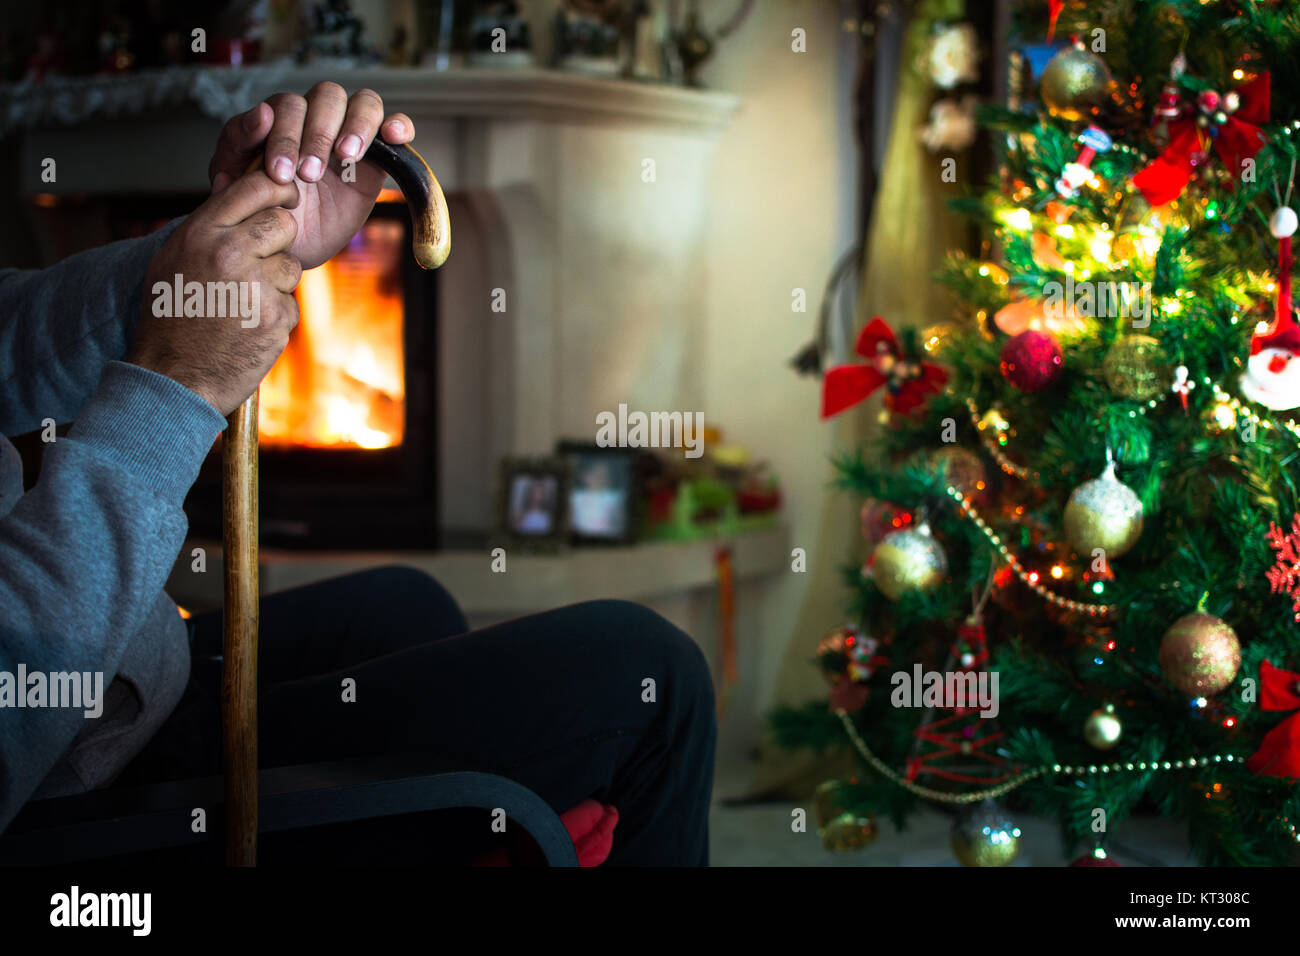 Lonely On Christmas.Lonely Christmas Stock Photos Lonely Christmas Stock